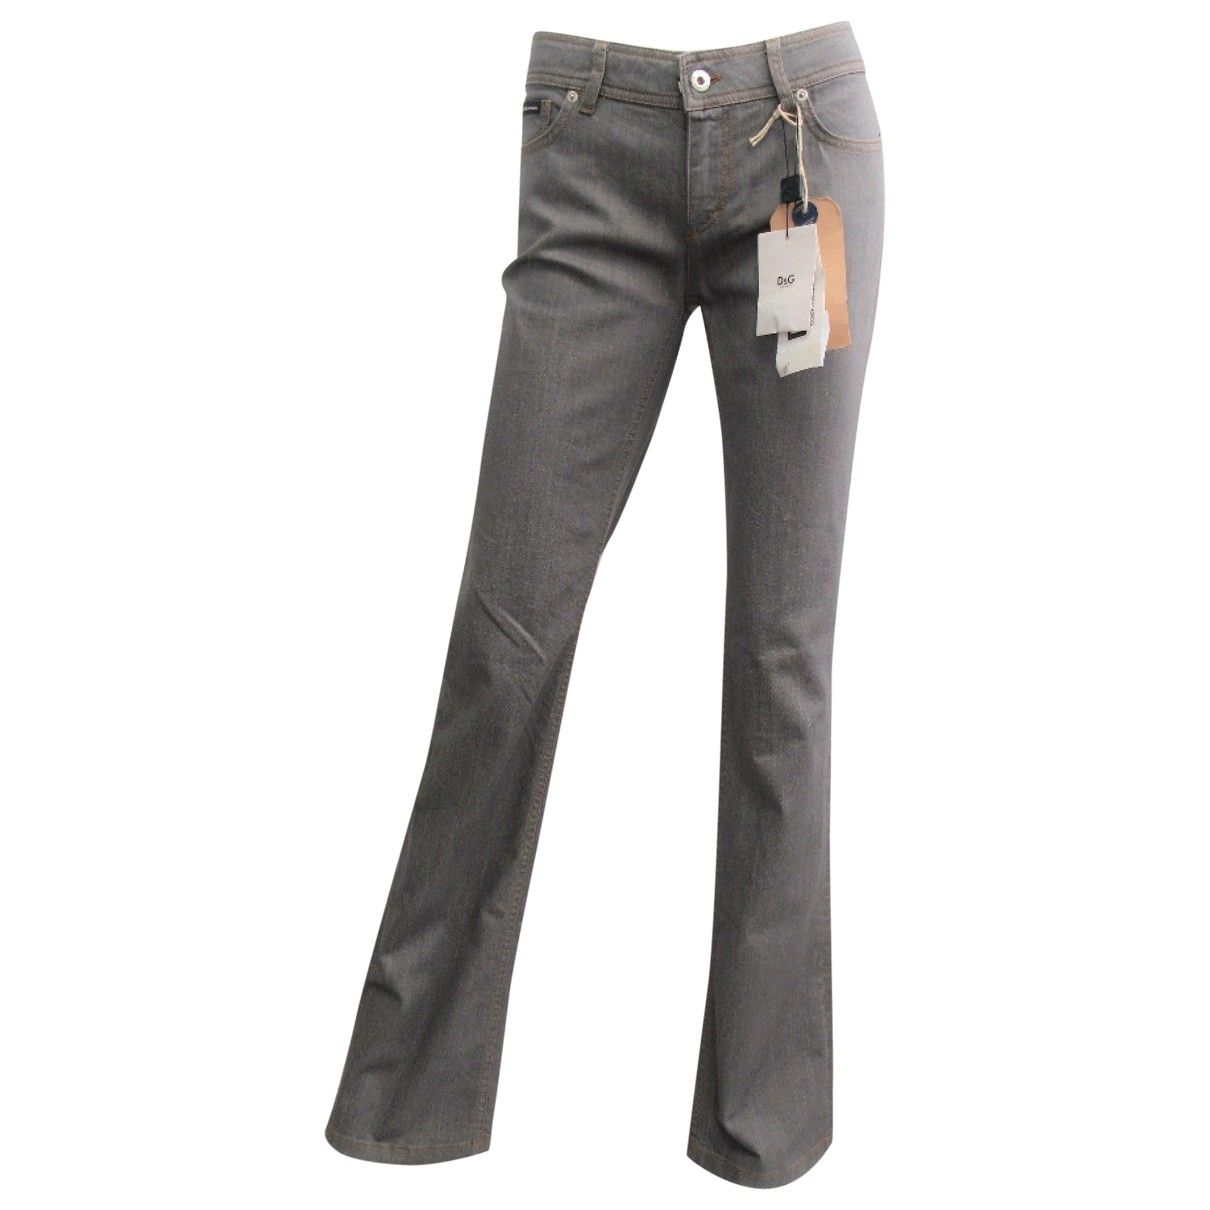 D&g \N Grey Cotton - elasthane Jeans for Women 29 US